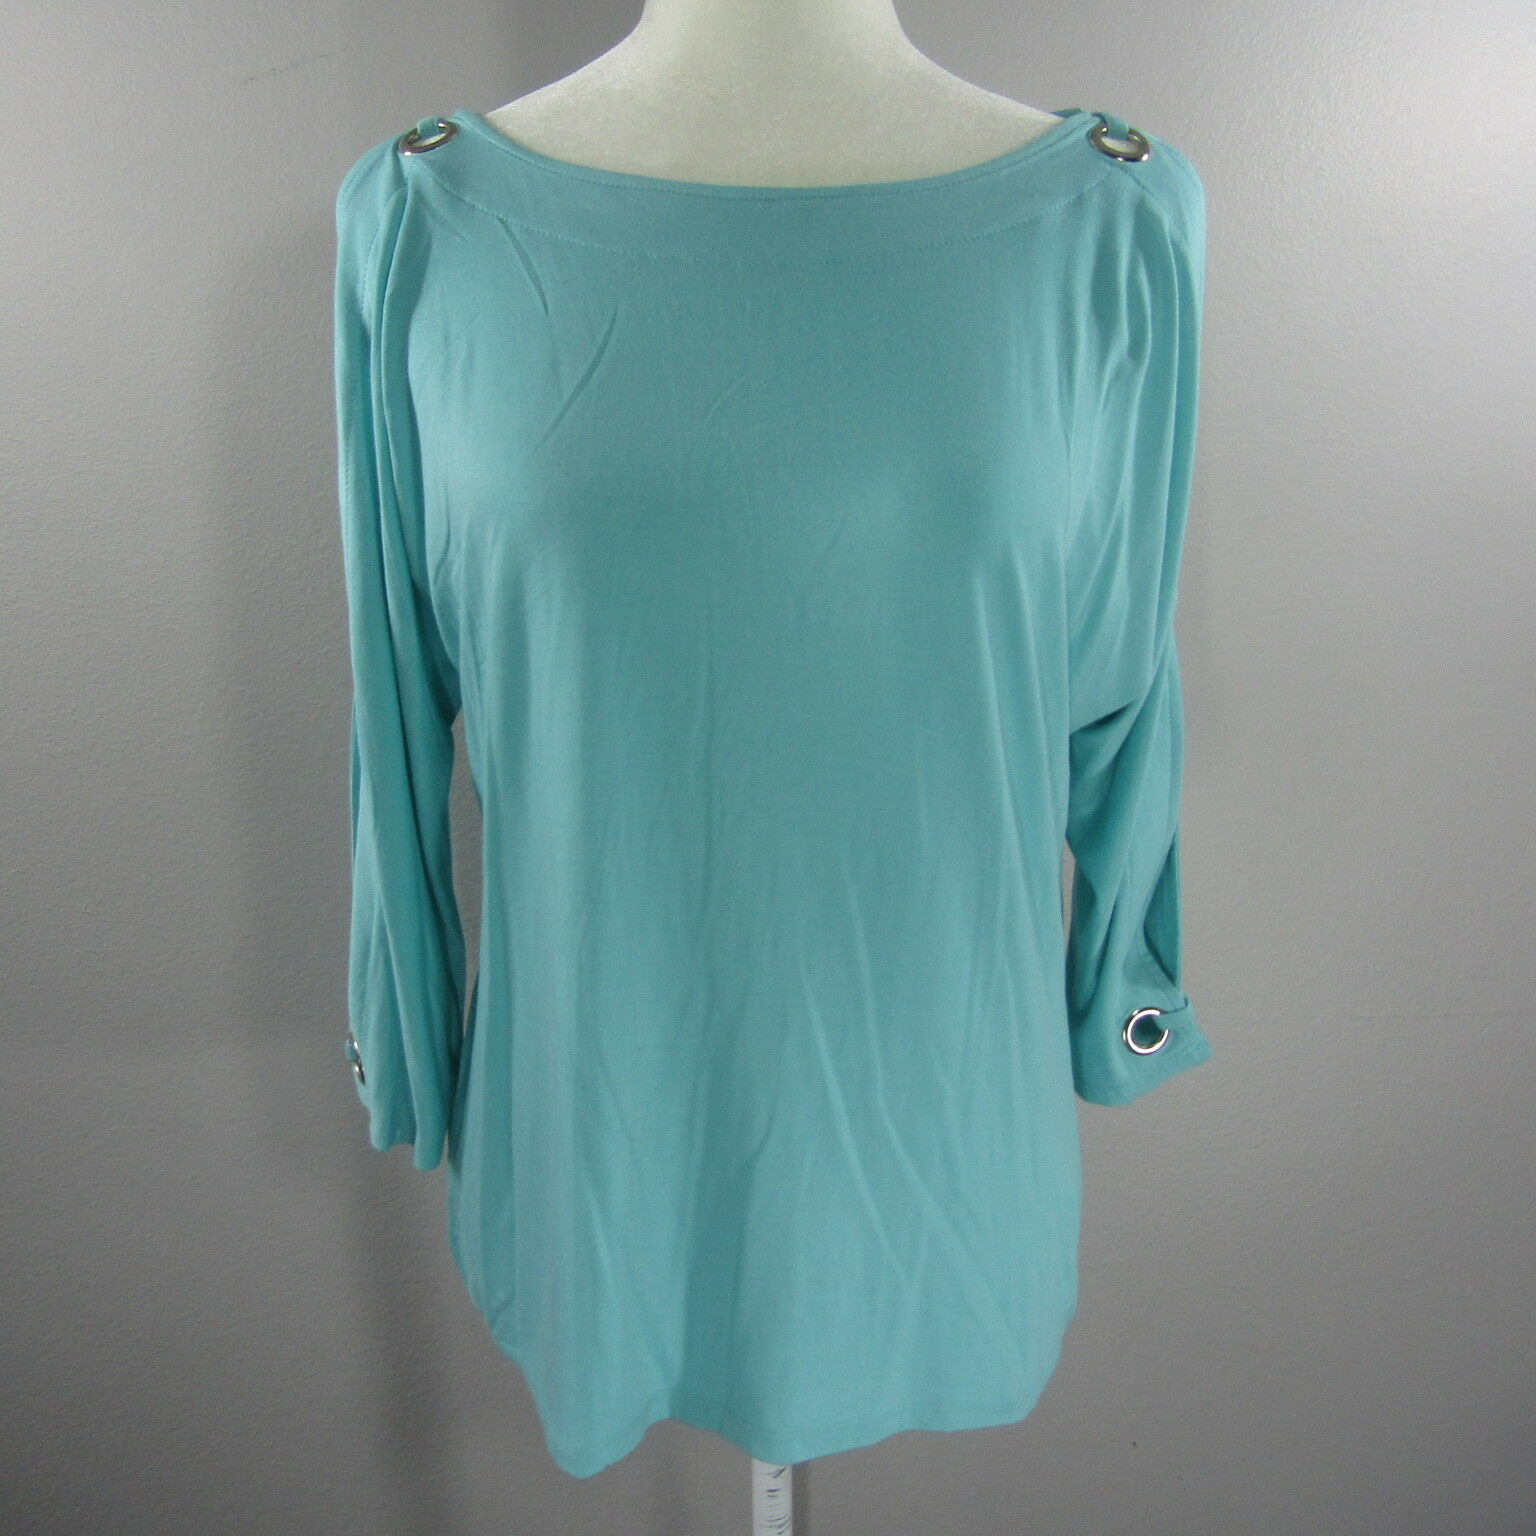 NEWCABLE & GAUGESoft Grün Cold Shoulder Blouse Shirt Größe Petite Medium